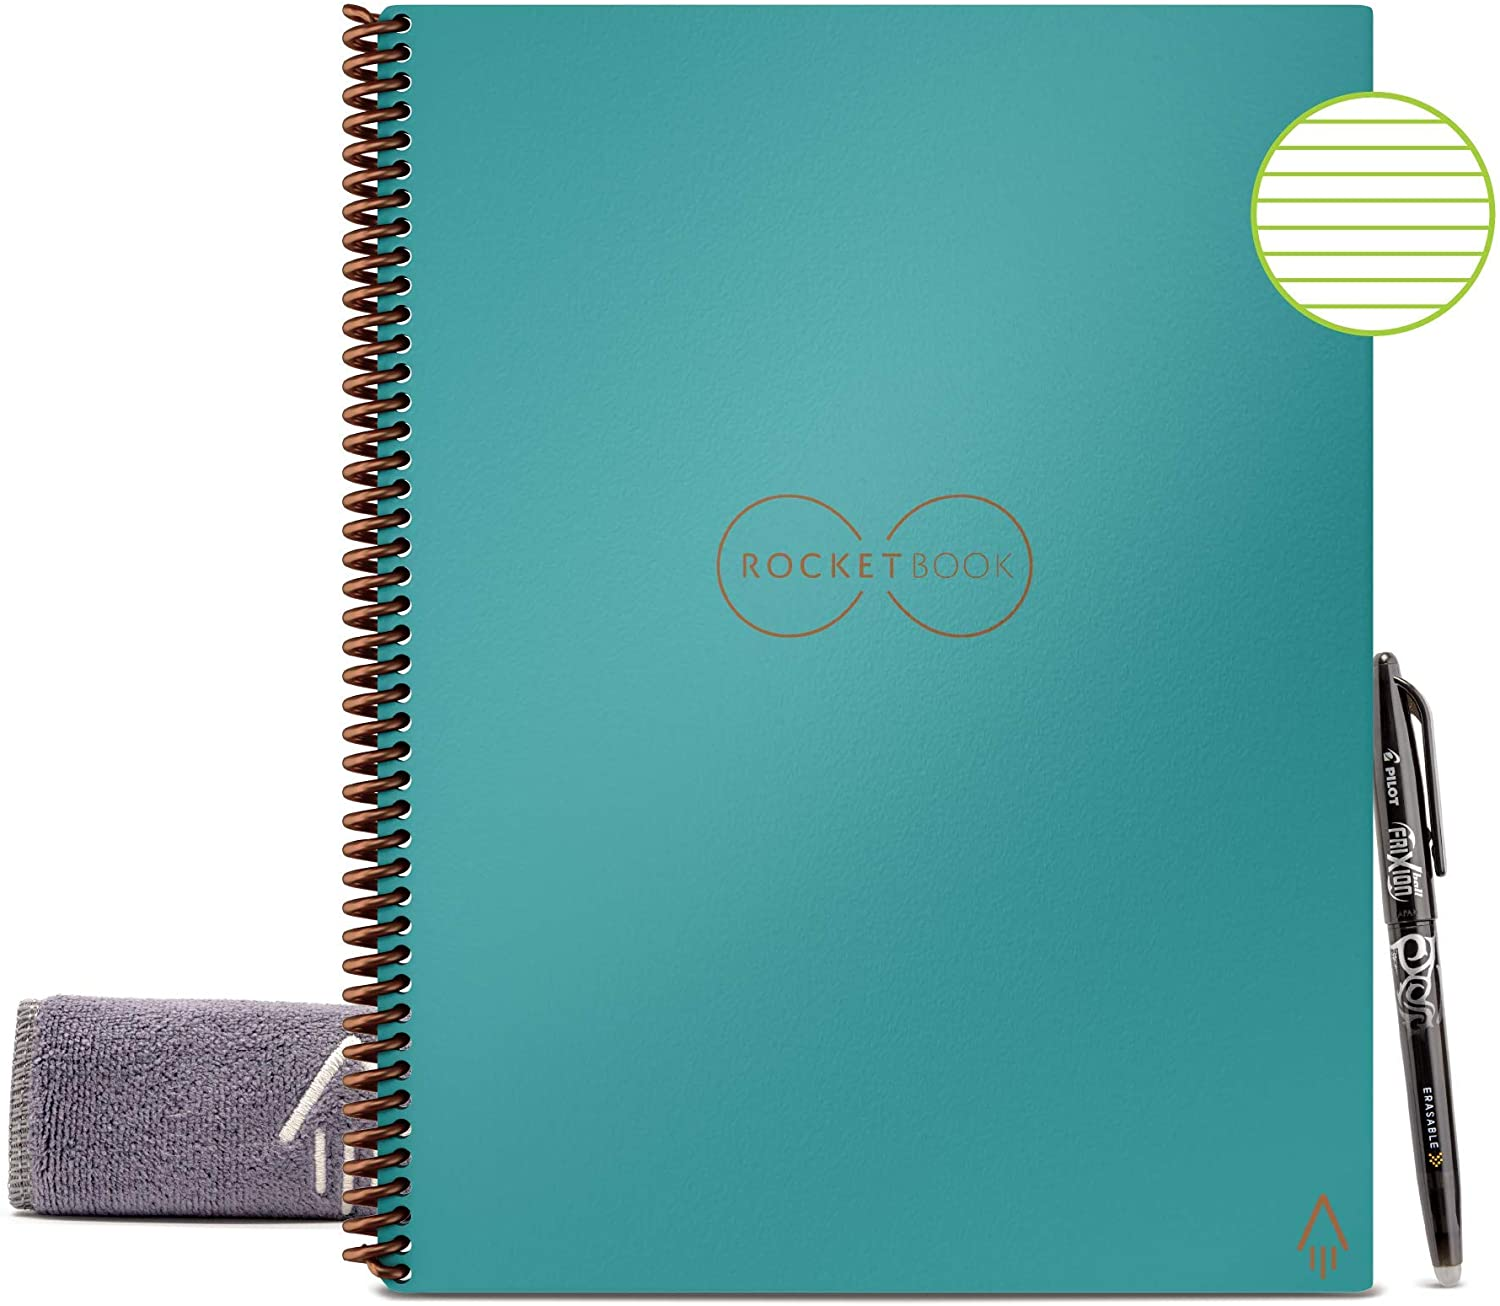 Rocketbook Notebook For Doing Math